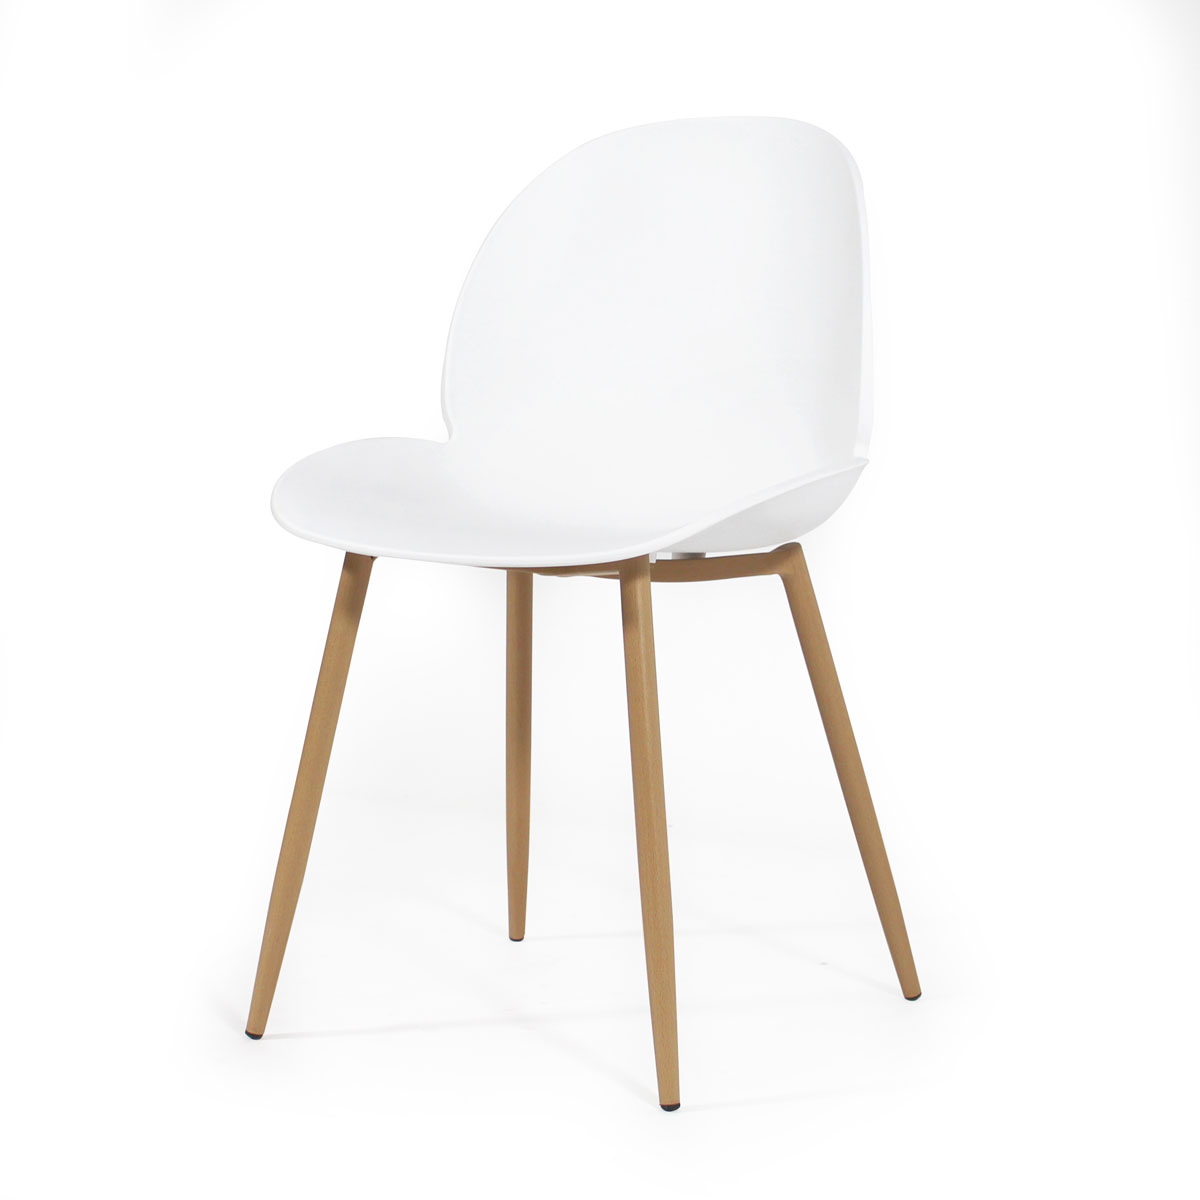 Chaise scandinave blanche tulipe